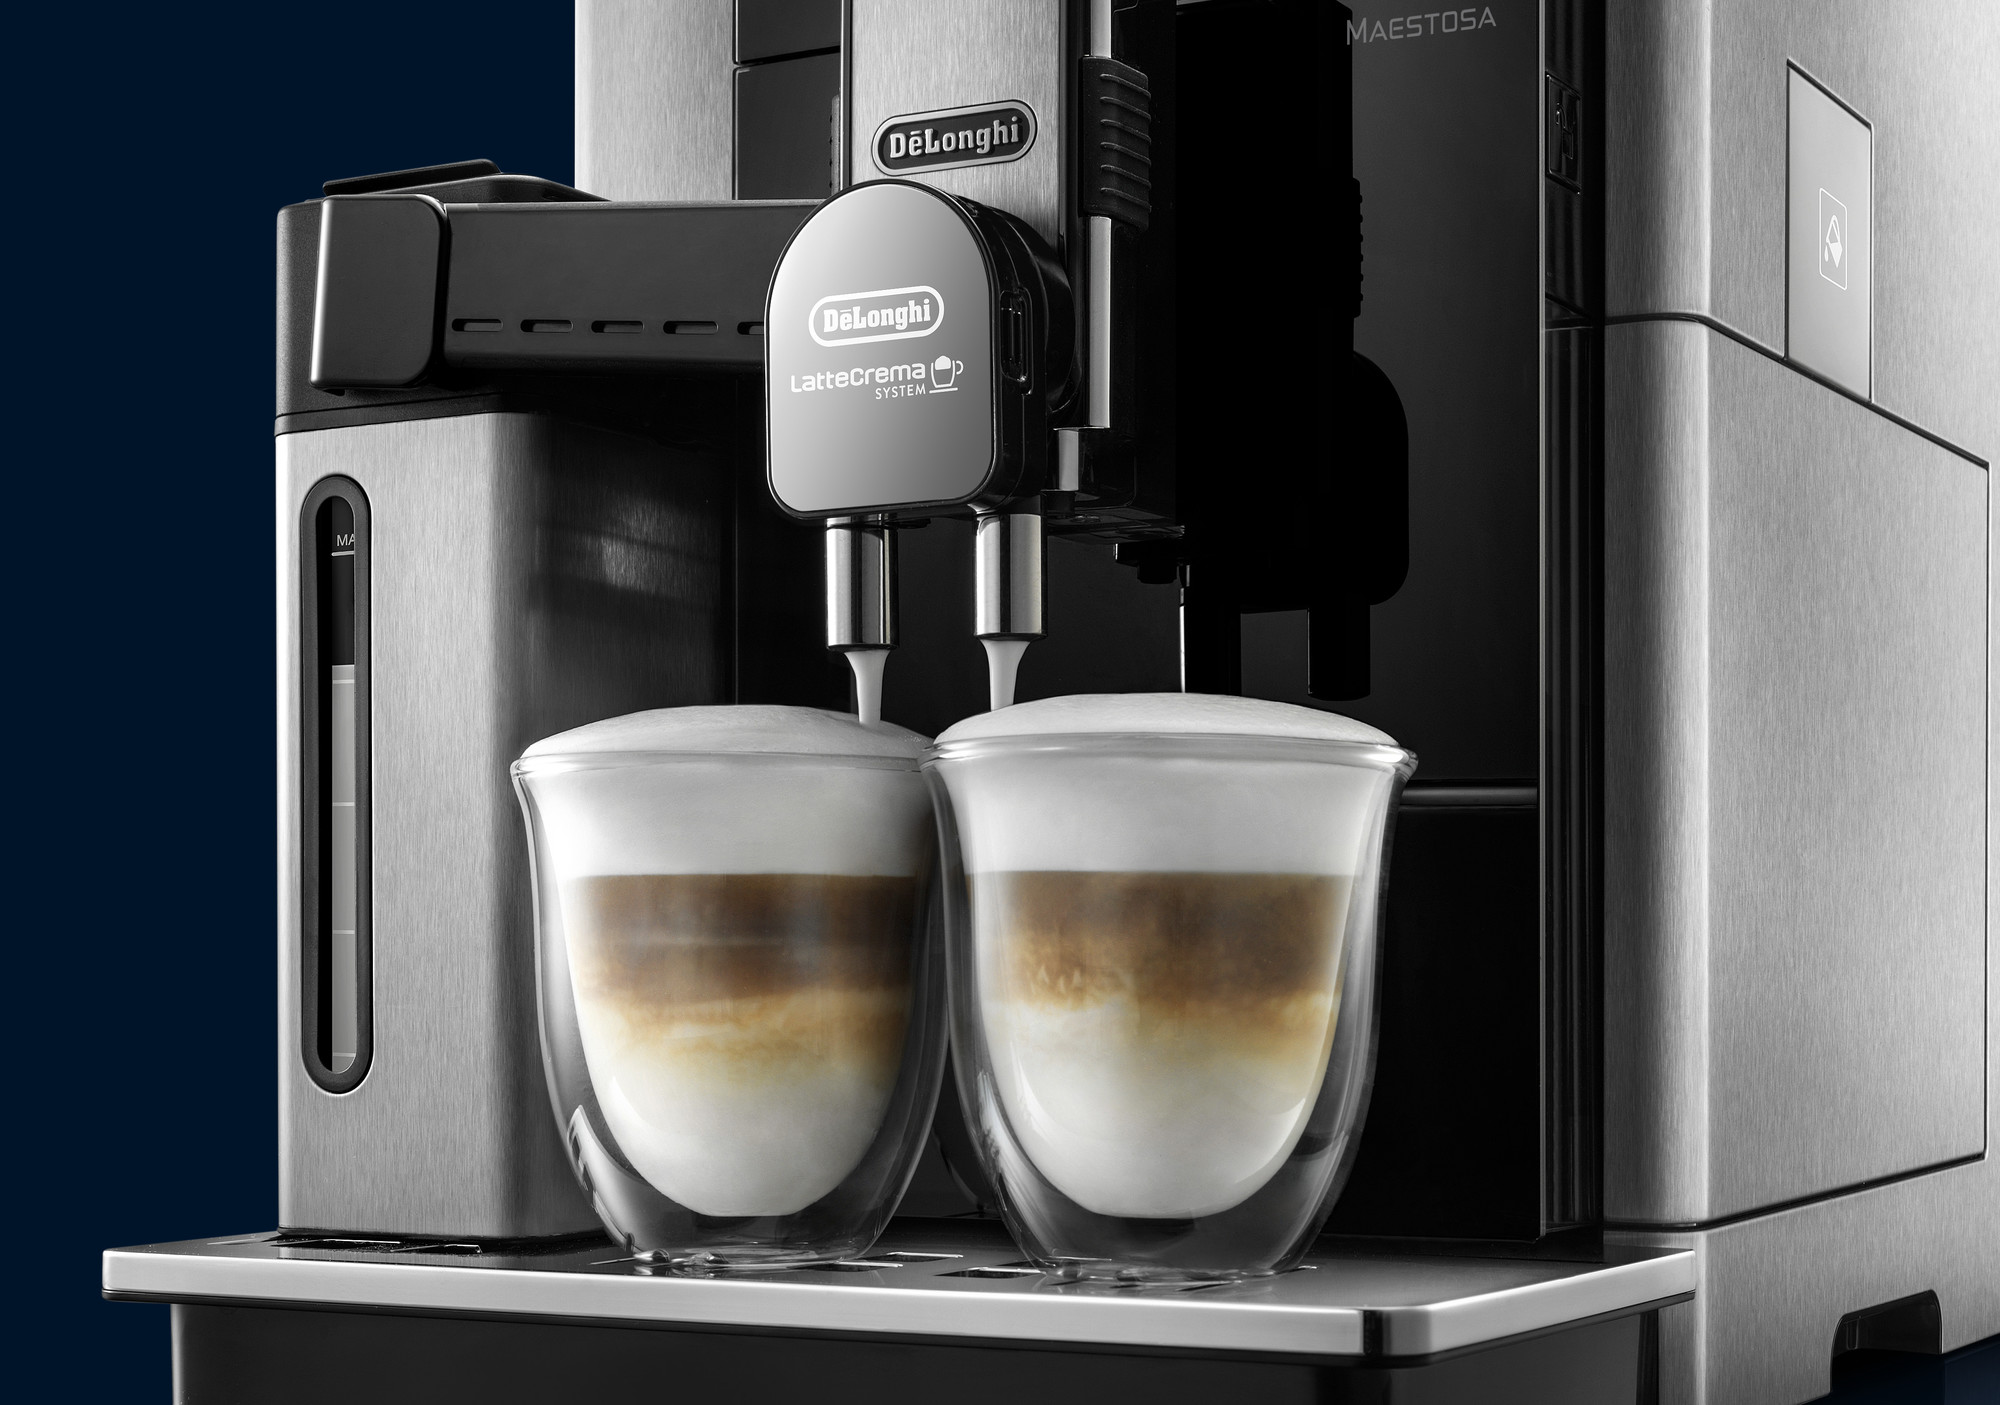 De'Longhi Maestosa Coffee Machine extracting espresso into two cups